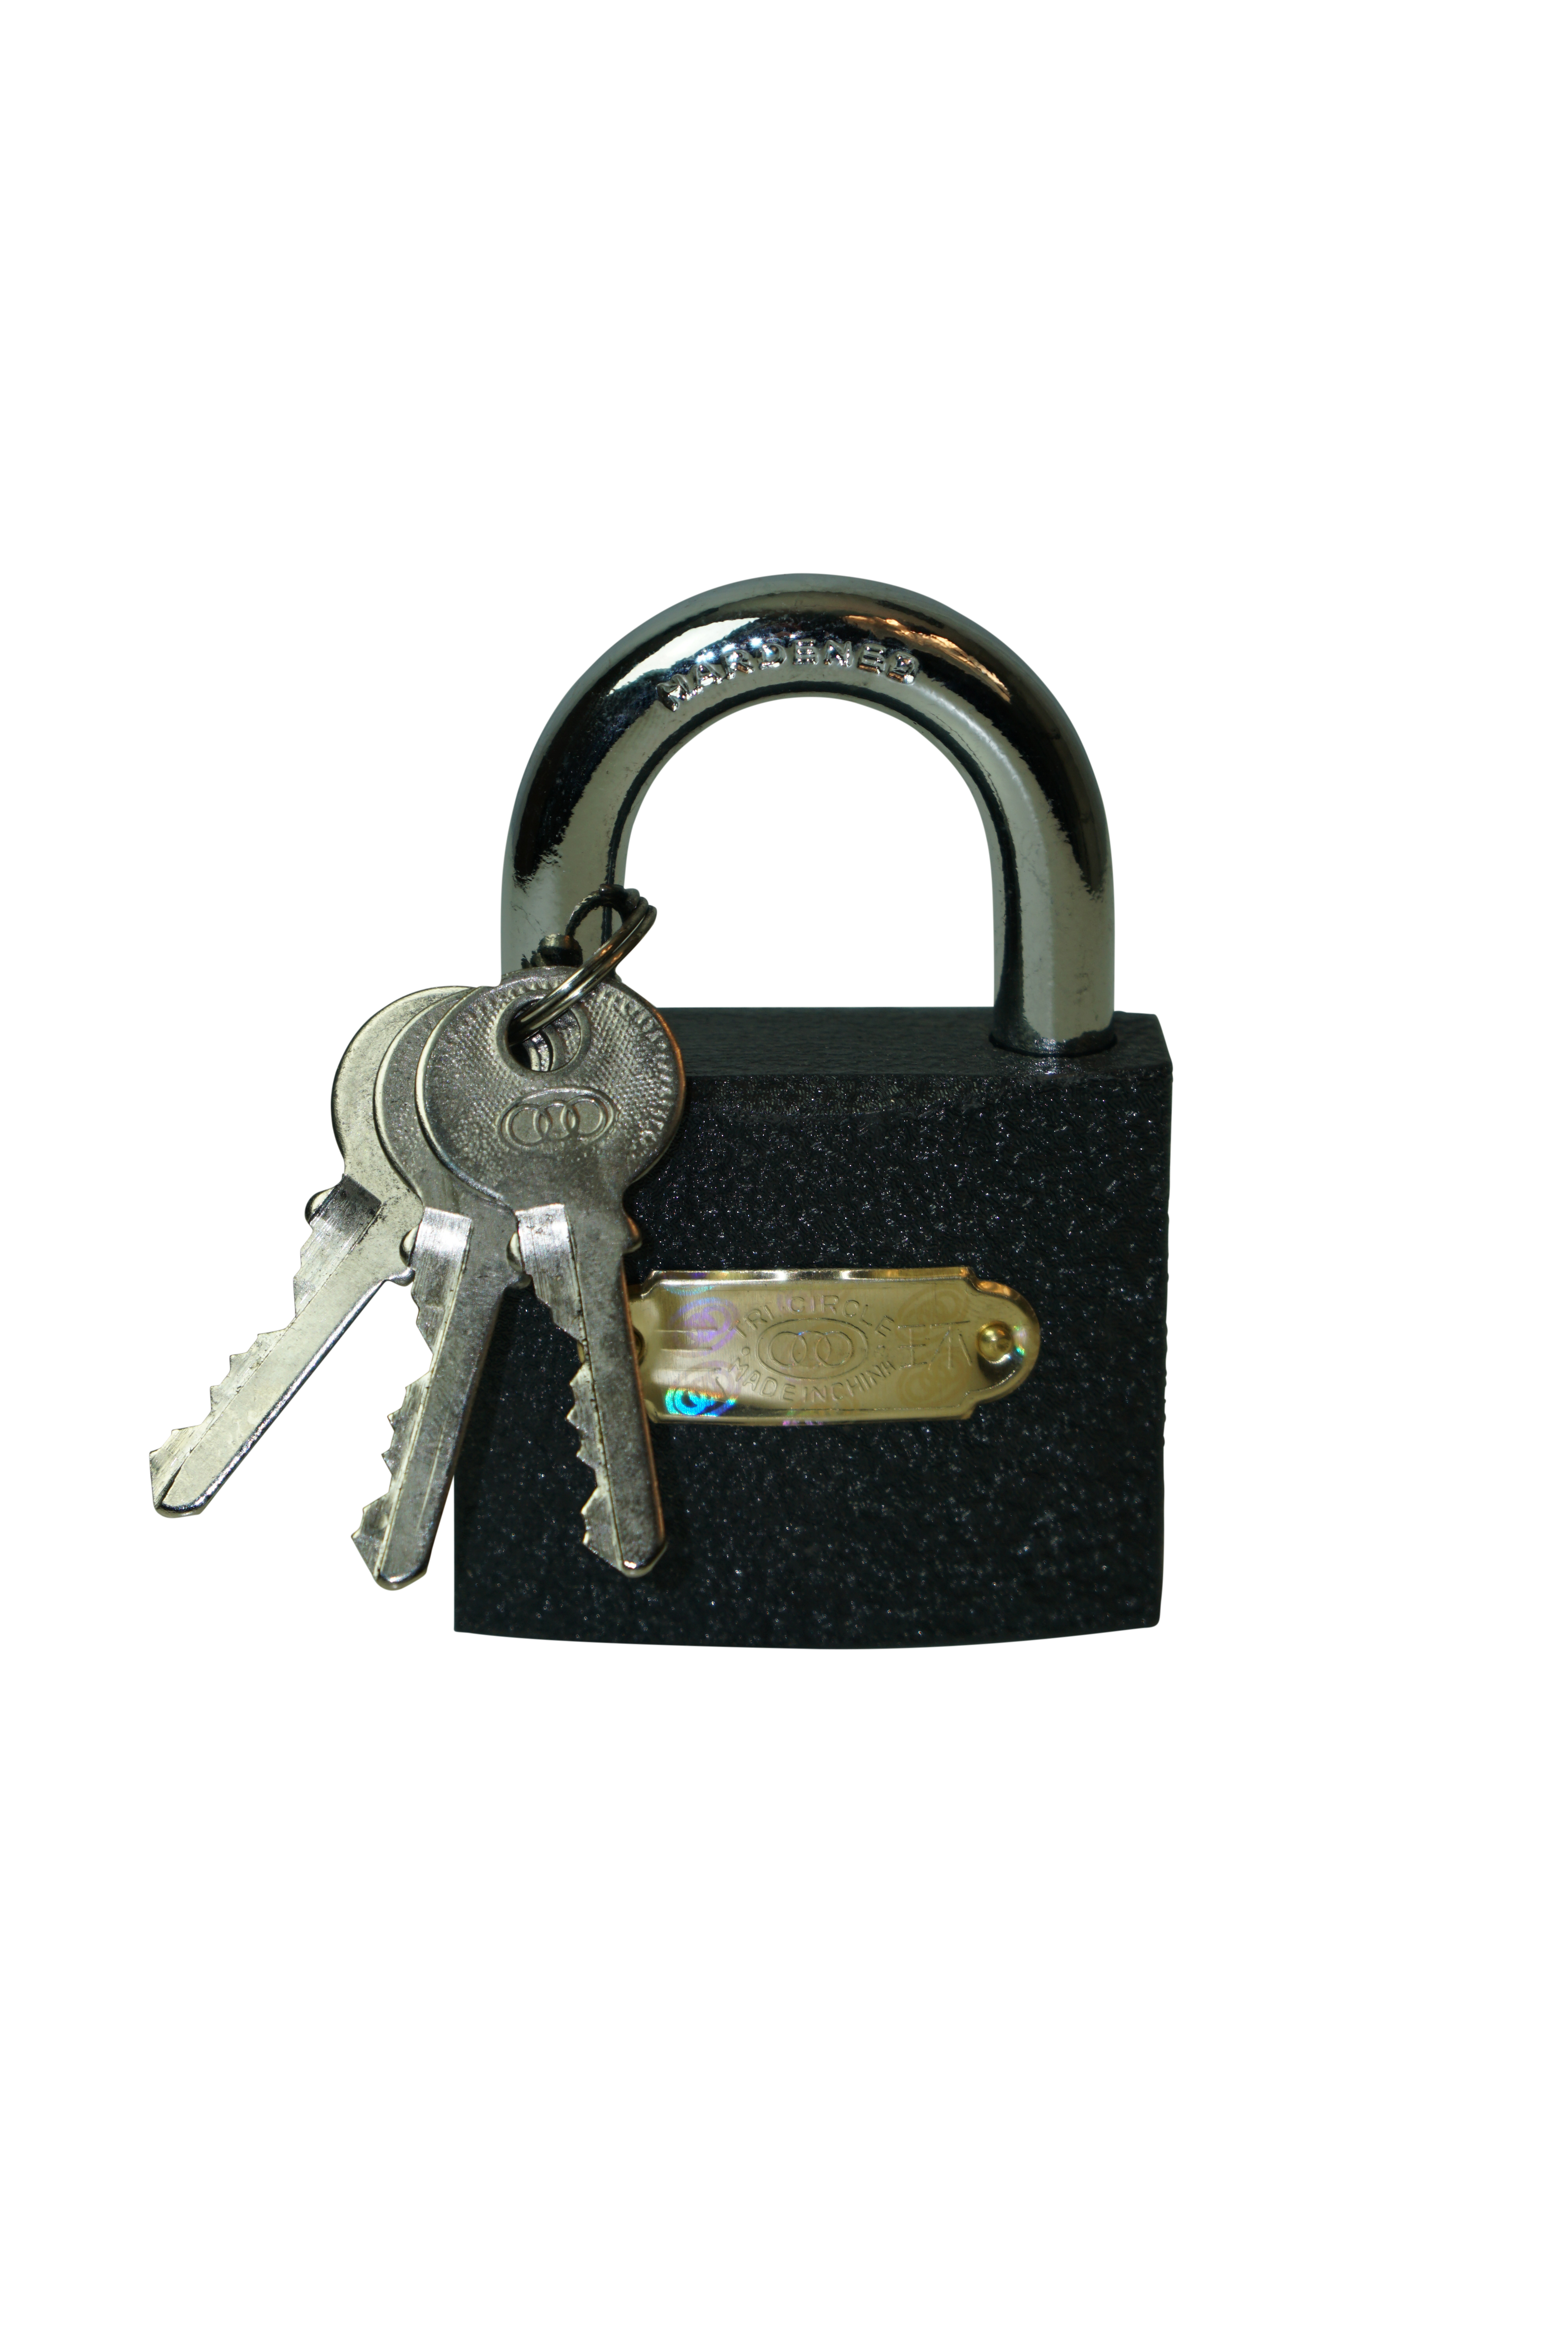 32mm TriCircle Iron Padlock with Brass Cylinder